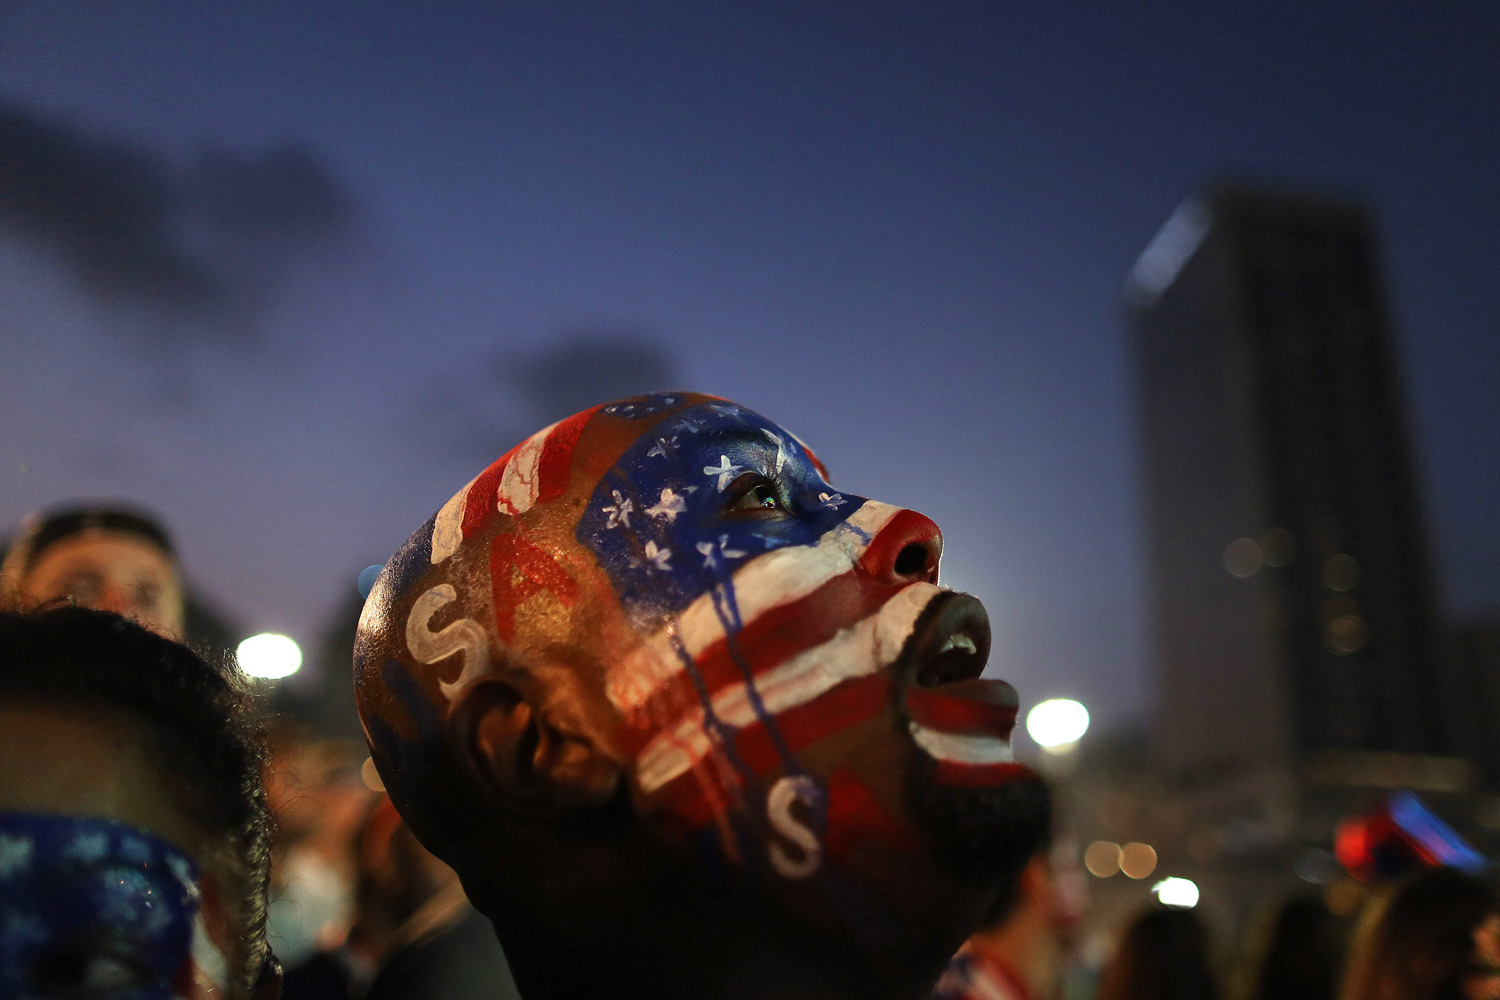 Jul. 1, 2014. A U.S. soccer fan watches his team's World Cup round of 16 match against Belgium on a live telecast inside the FIFA Fan Fest area on Copacabana beach in Rio de Janeiro, Brazil.